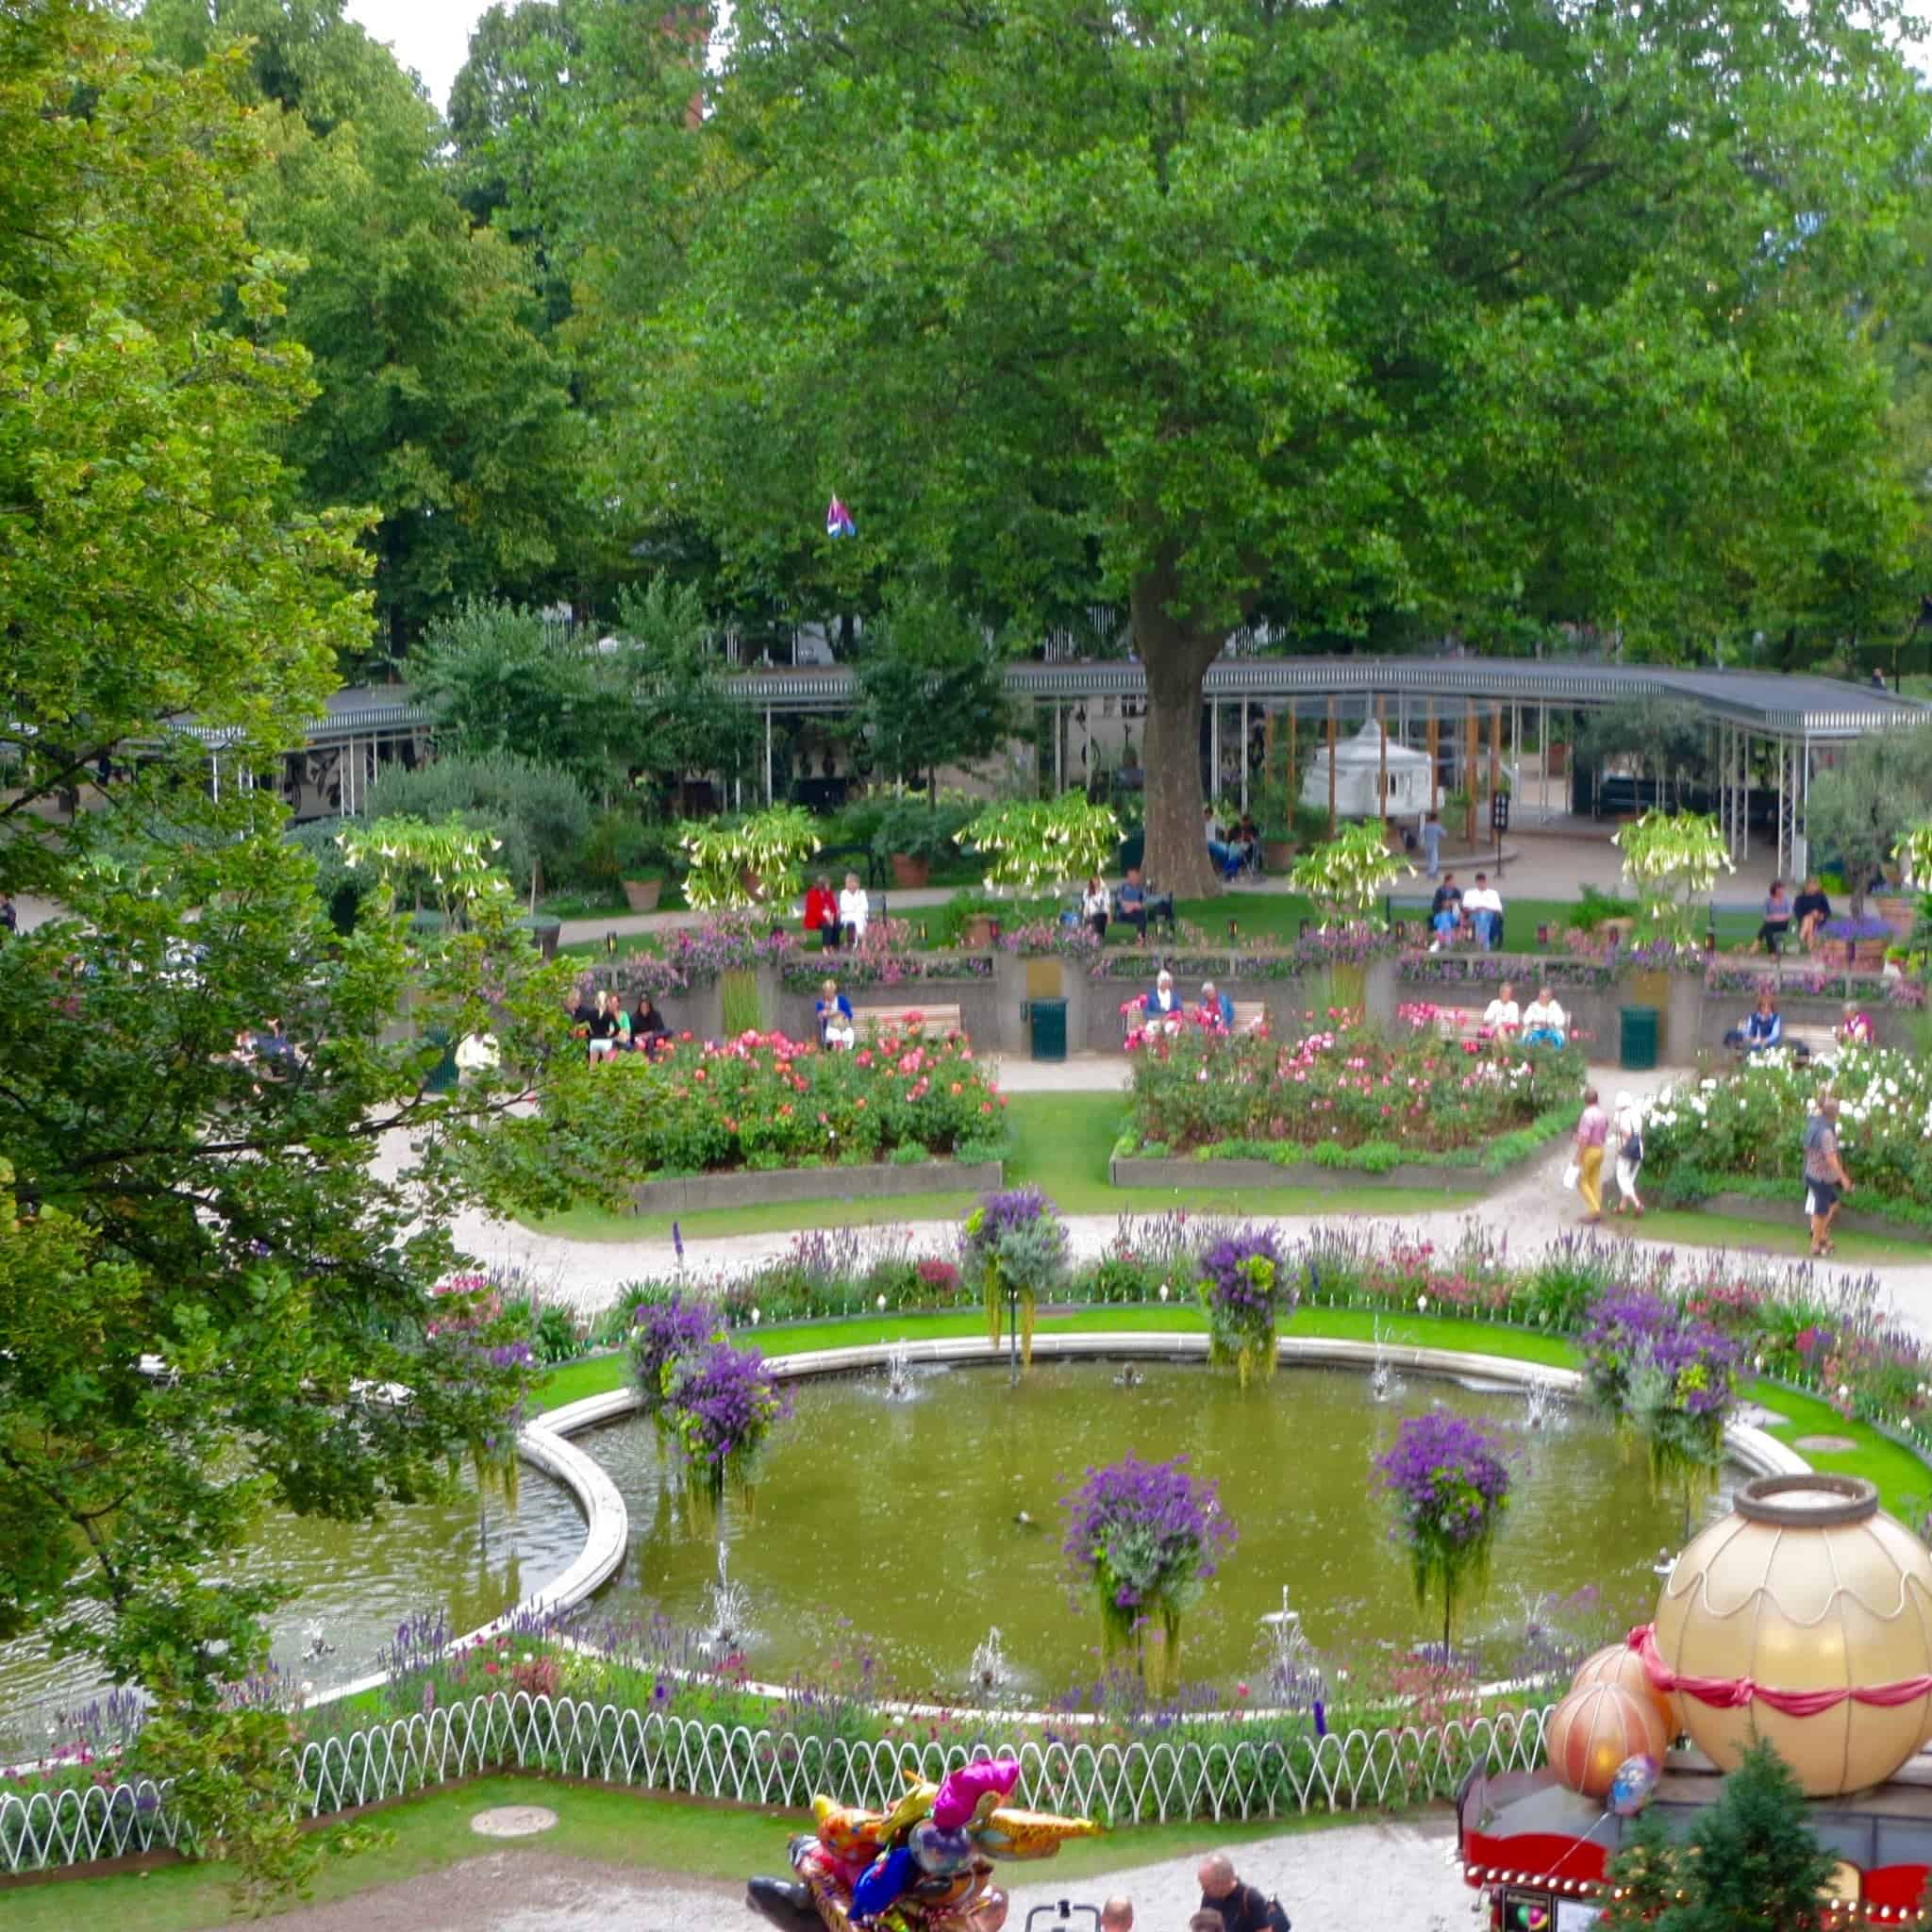 What To Do At Tivoli Gardens Unlimited Rides World On A Whim